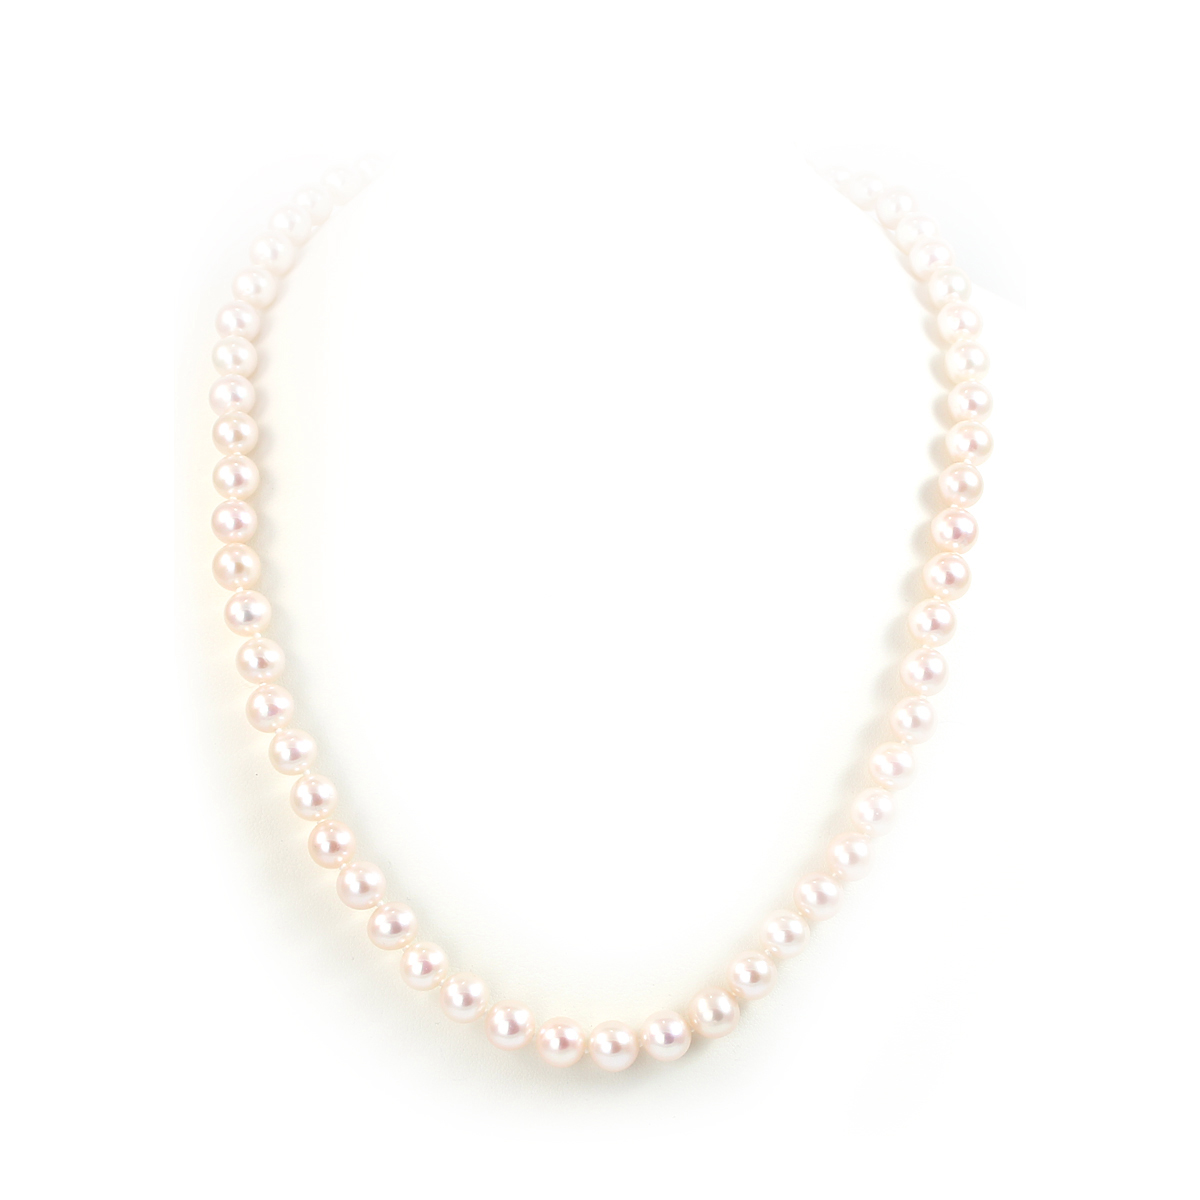 7-8mm White Freshwater Cultured Pearl Necklace